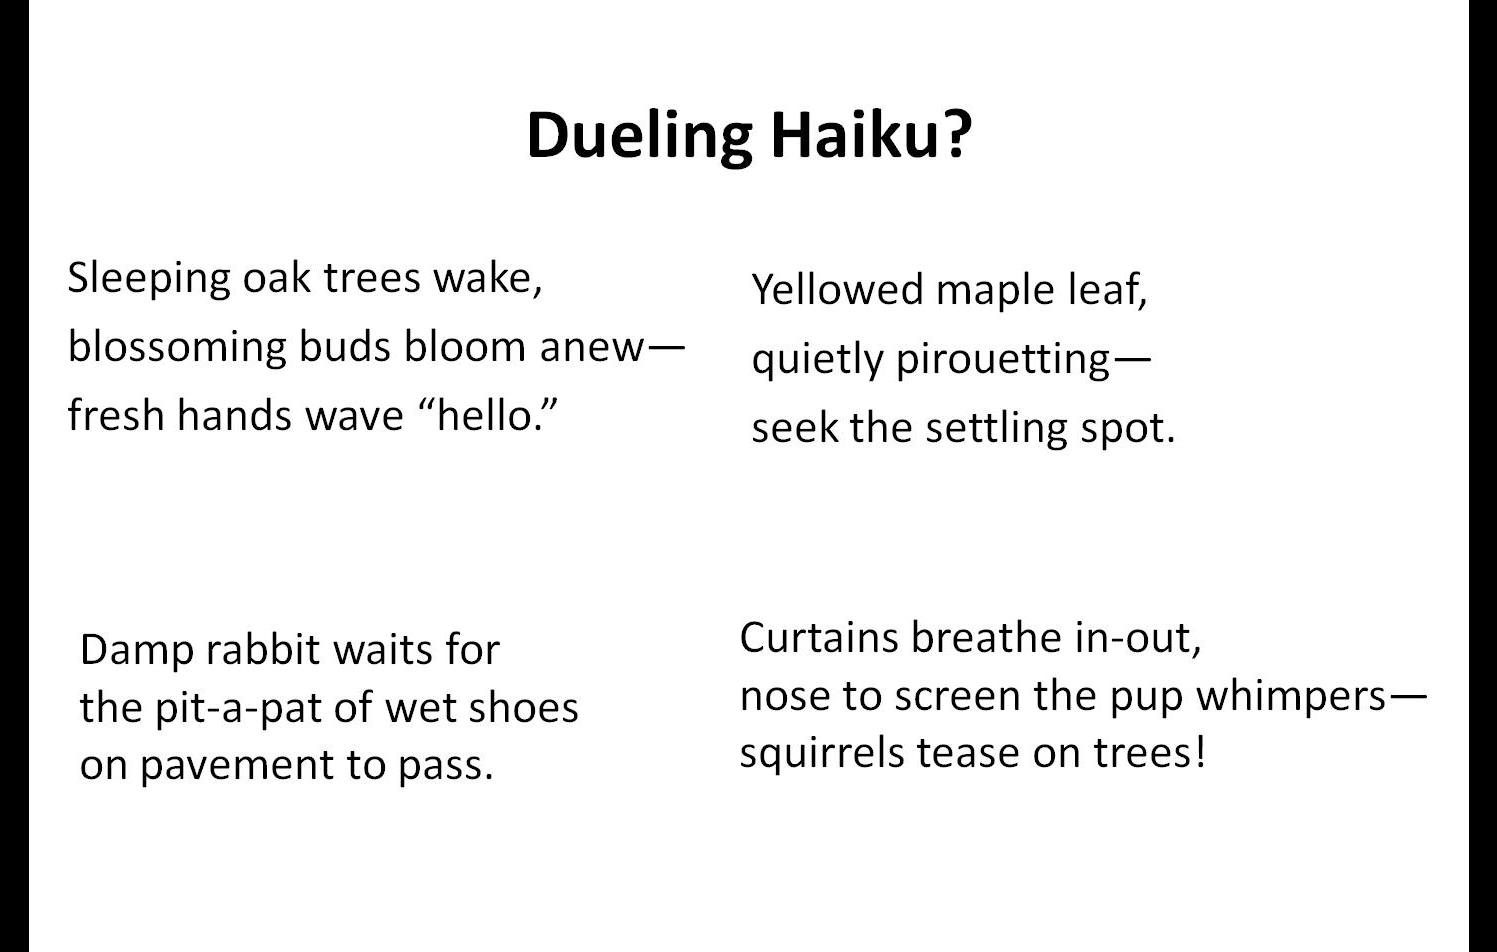 Worksheet Haiku Worksheet Grass Fedjp Worksheet Study Site